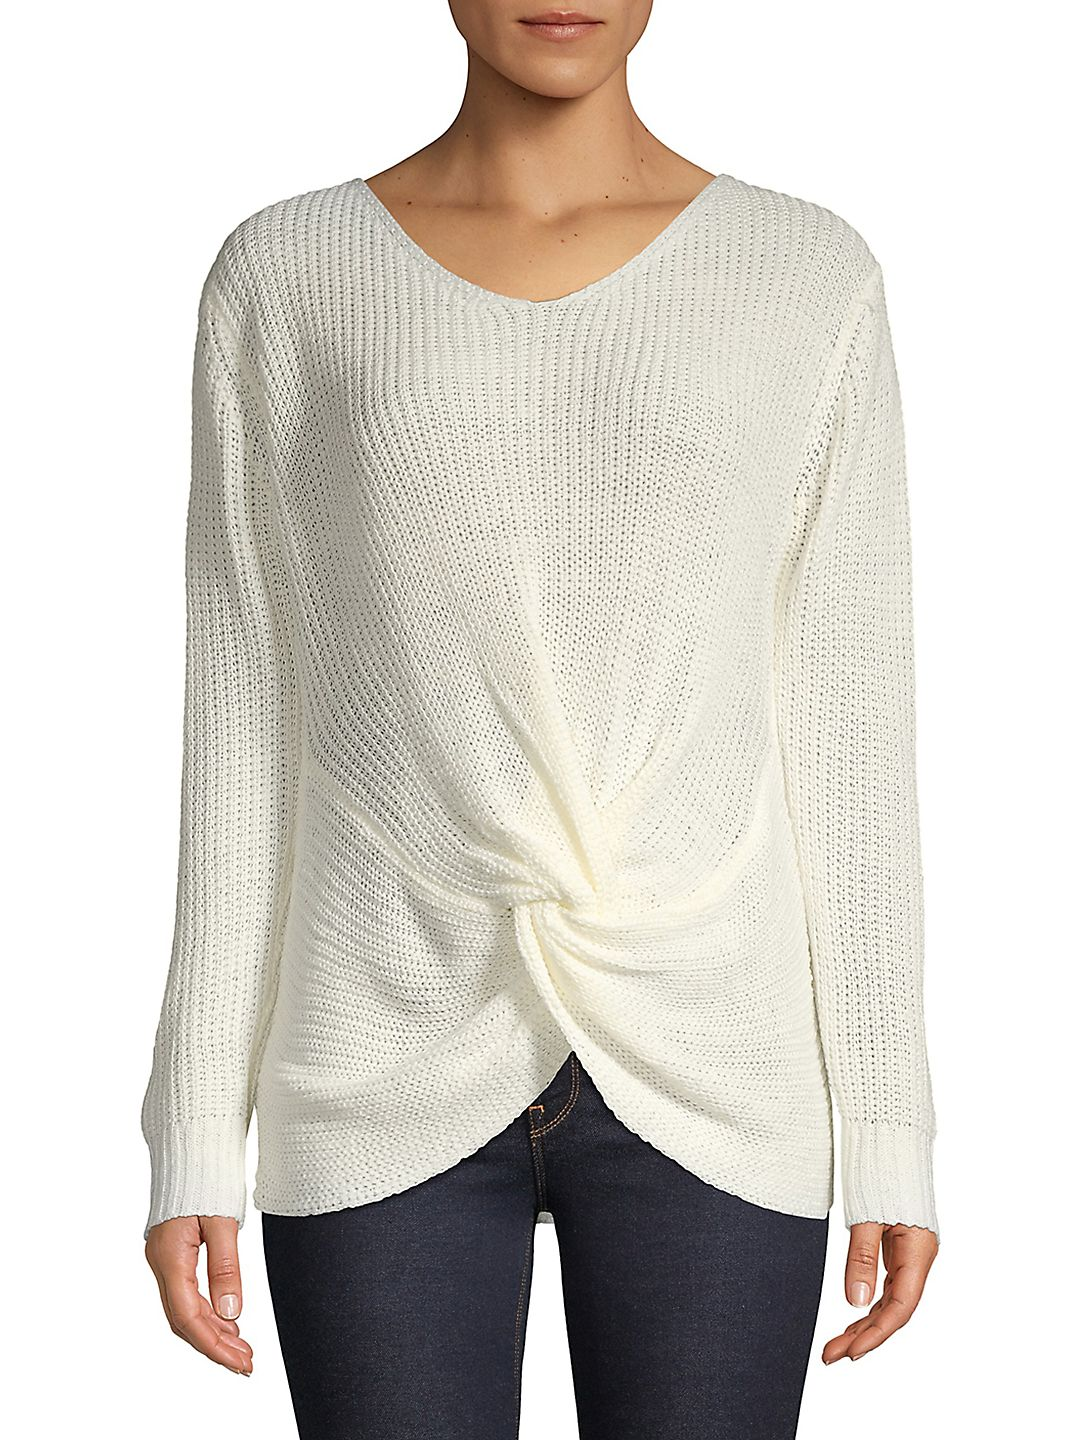 Knotted Long-Sleeve Top